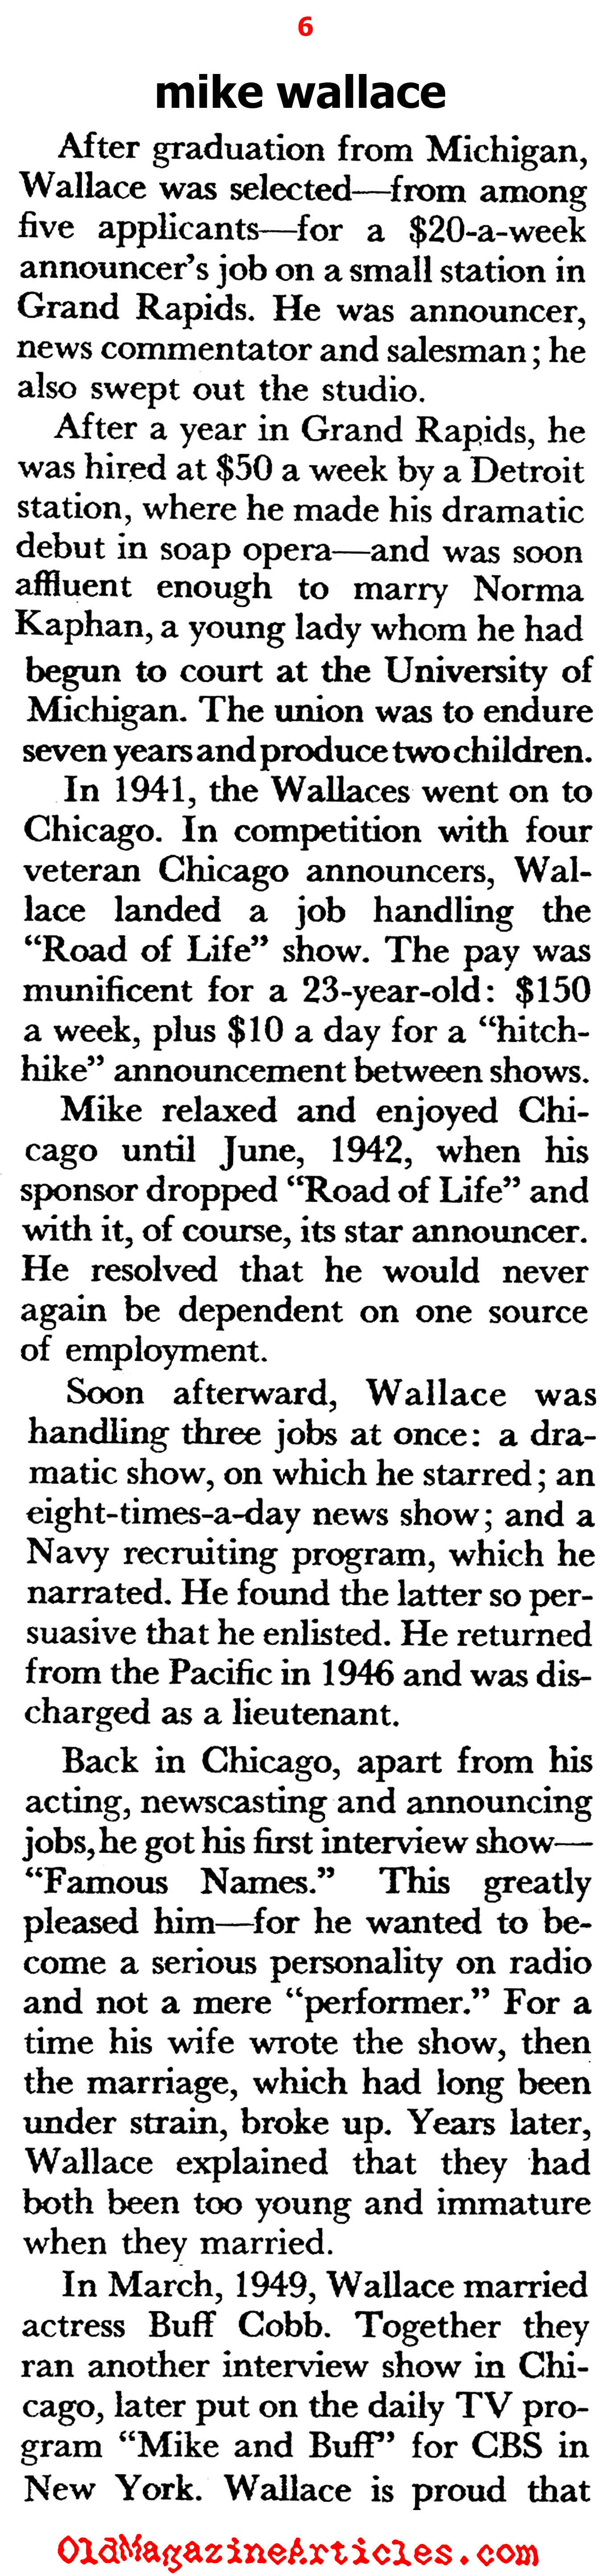 Mike Wallace of ABC (Pageant Magazine, 1957)